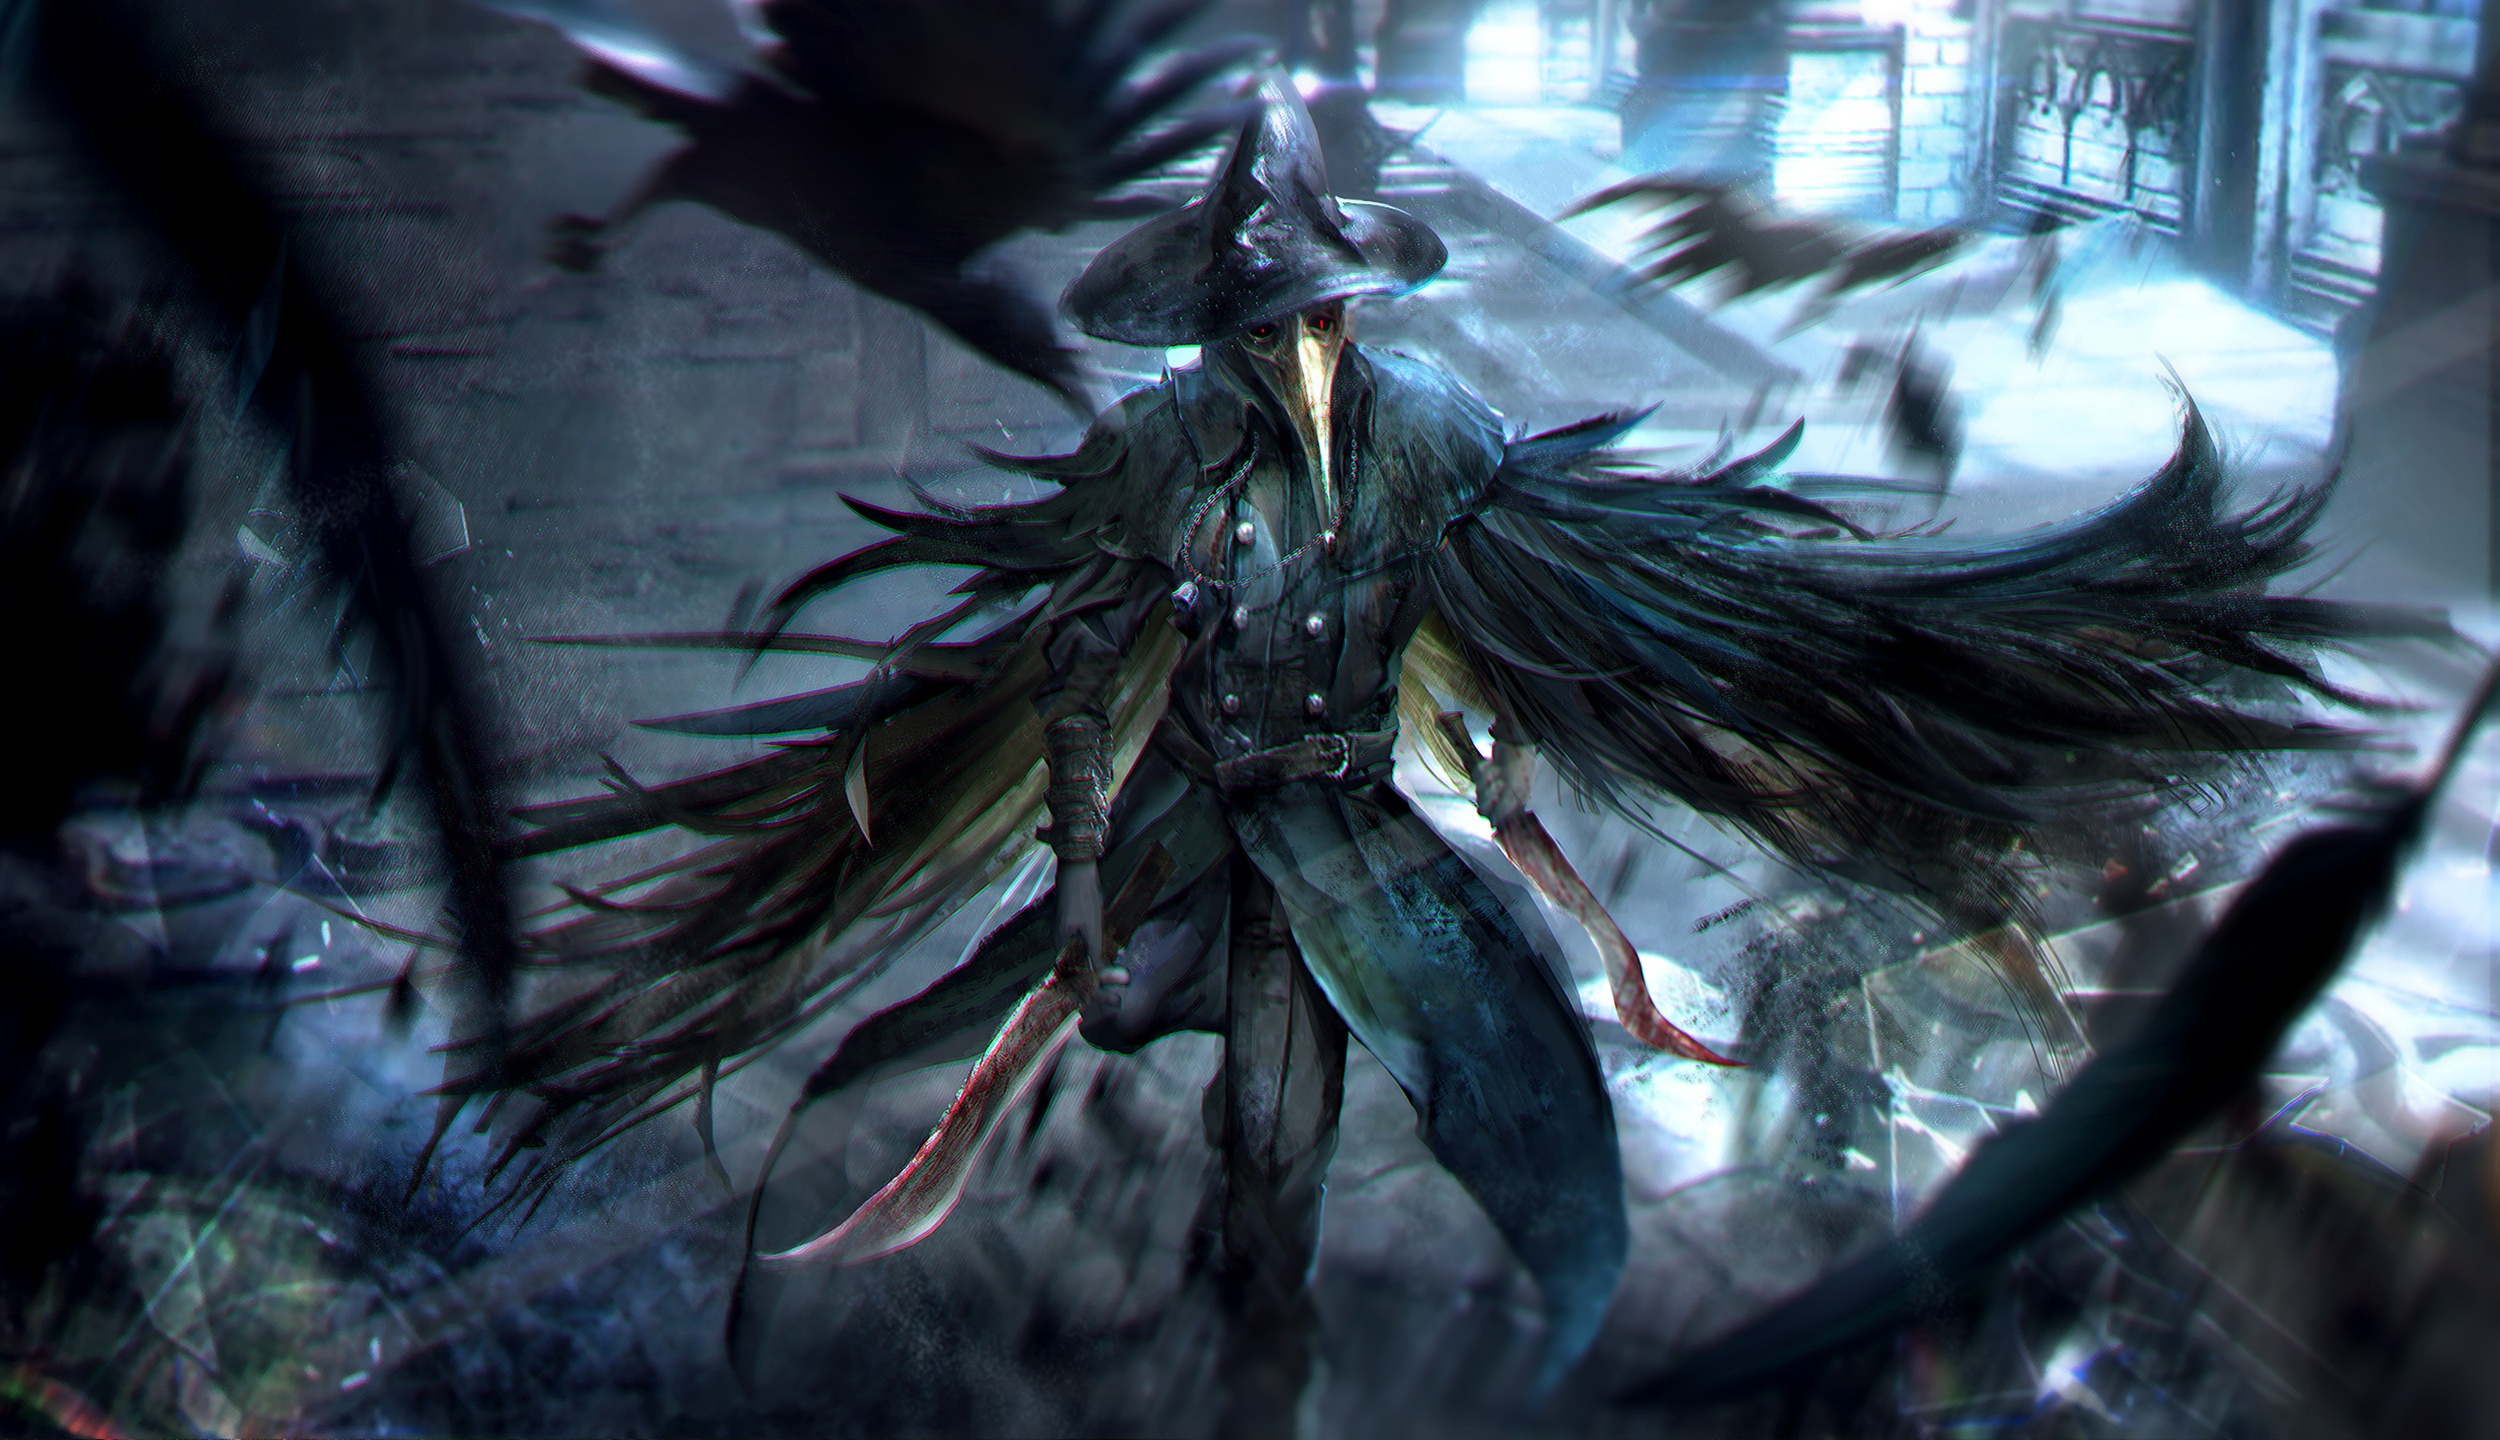 Bloodborne Full HD Wallpaper and Background 2500x1440 2500x1440